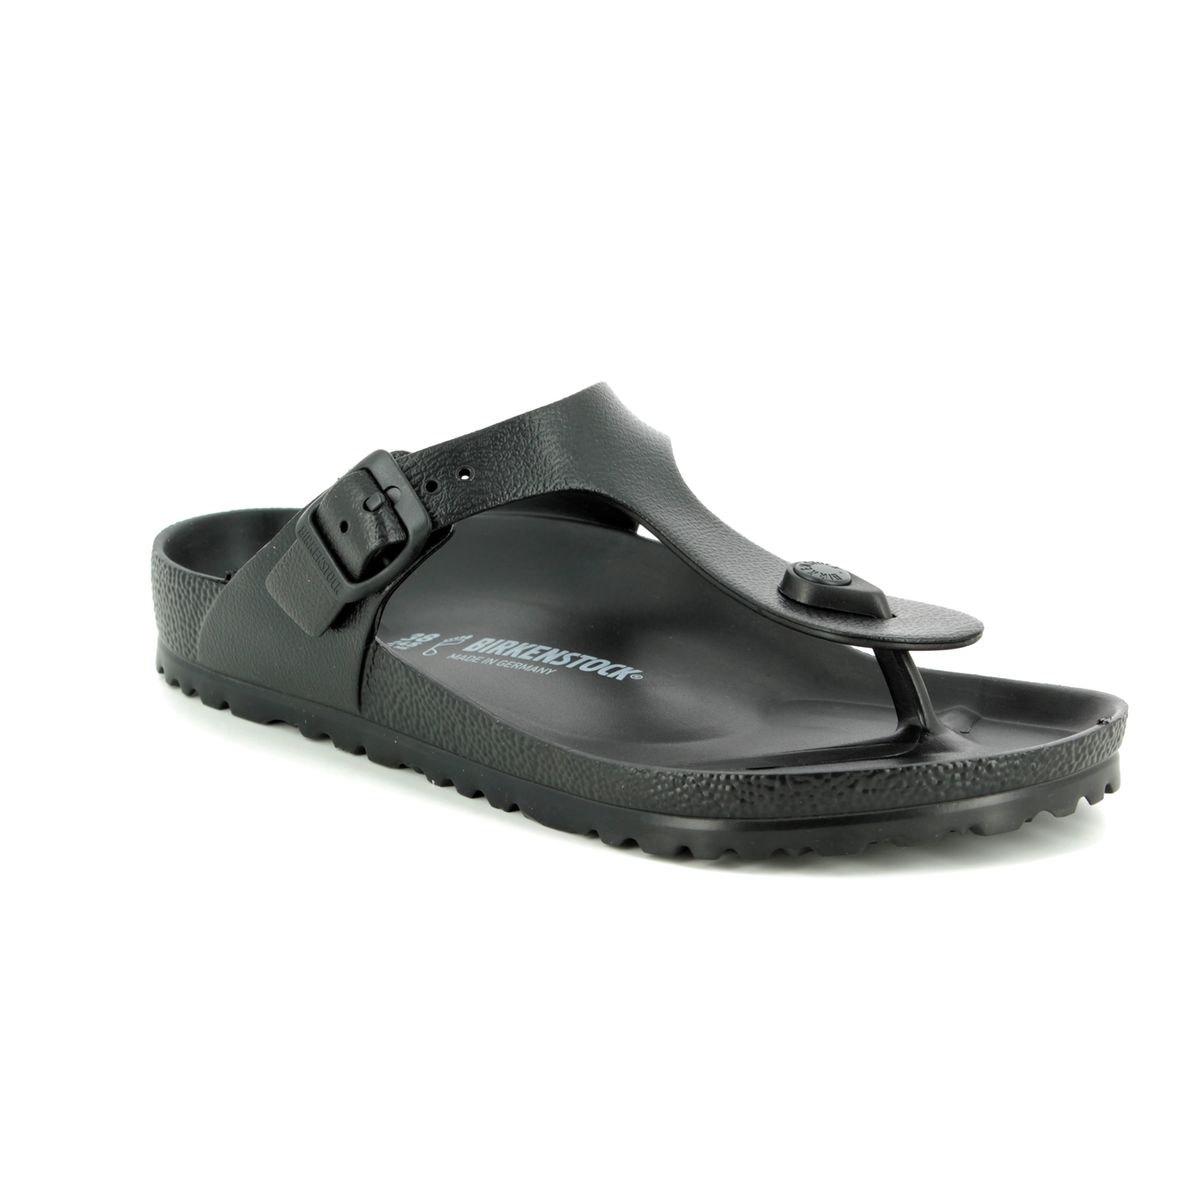 5a7041322e4d Birkenstock Toe Post Sandals - Black - 0128201 GIZEH EVA